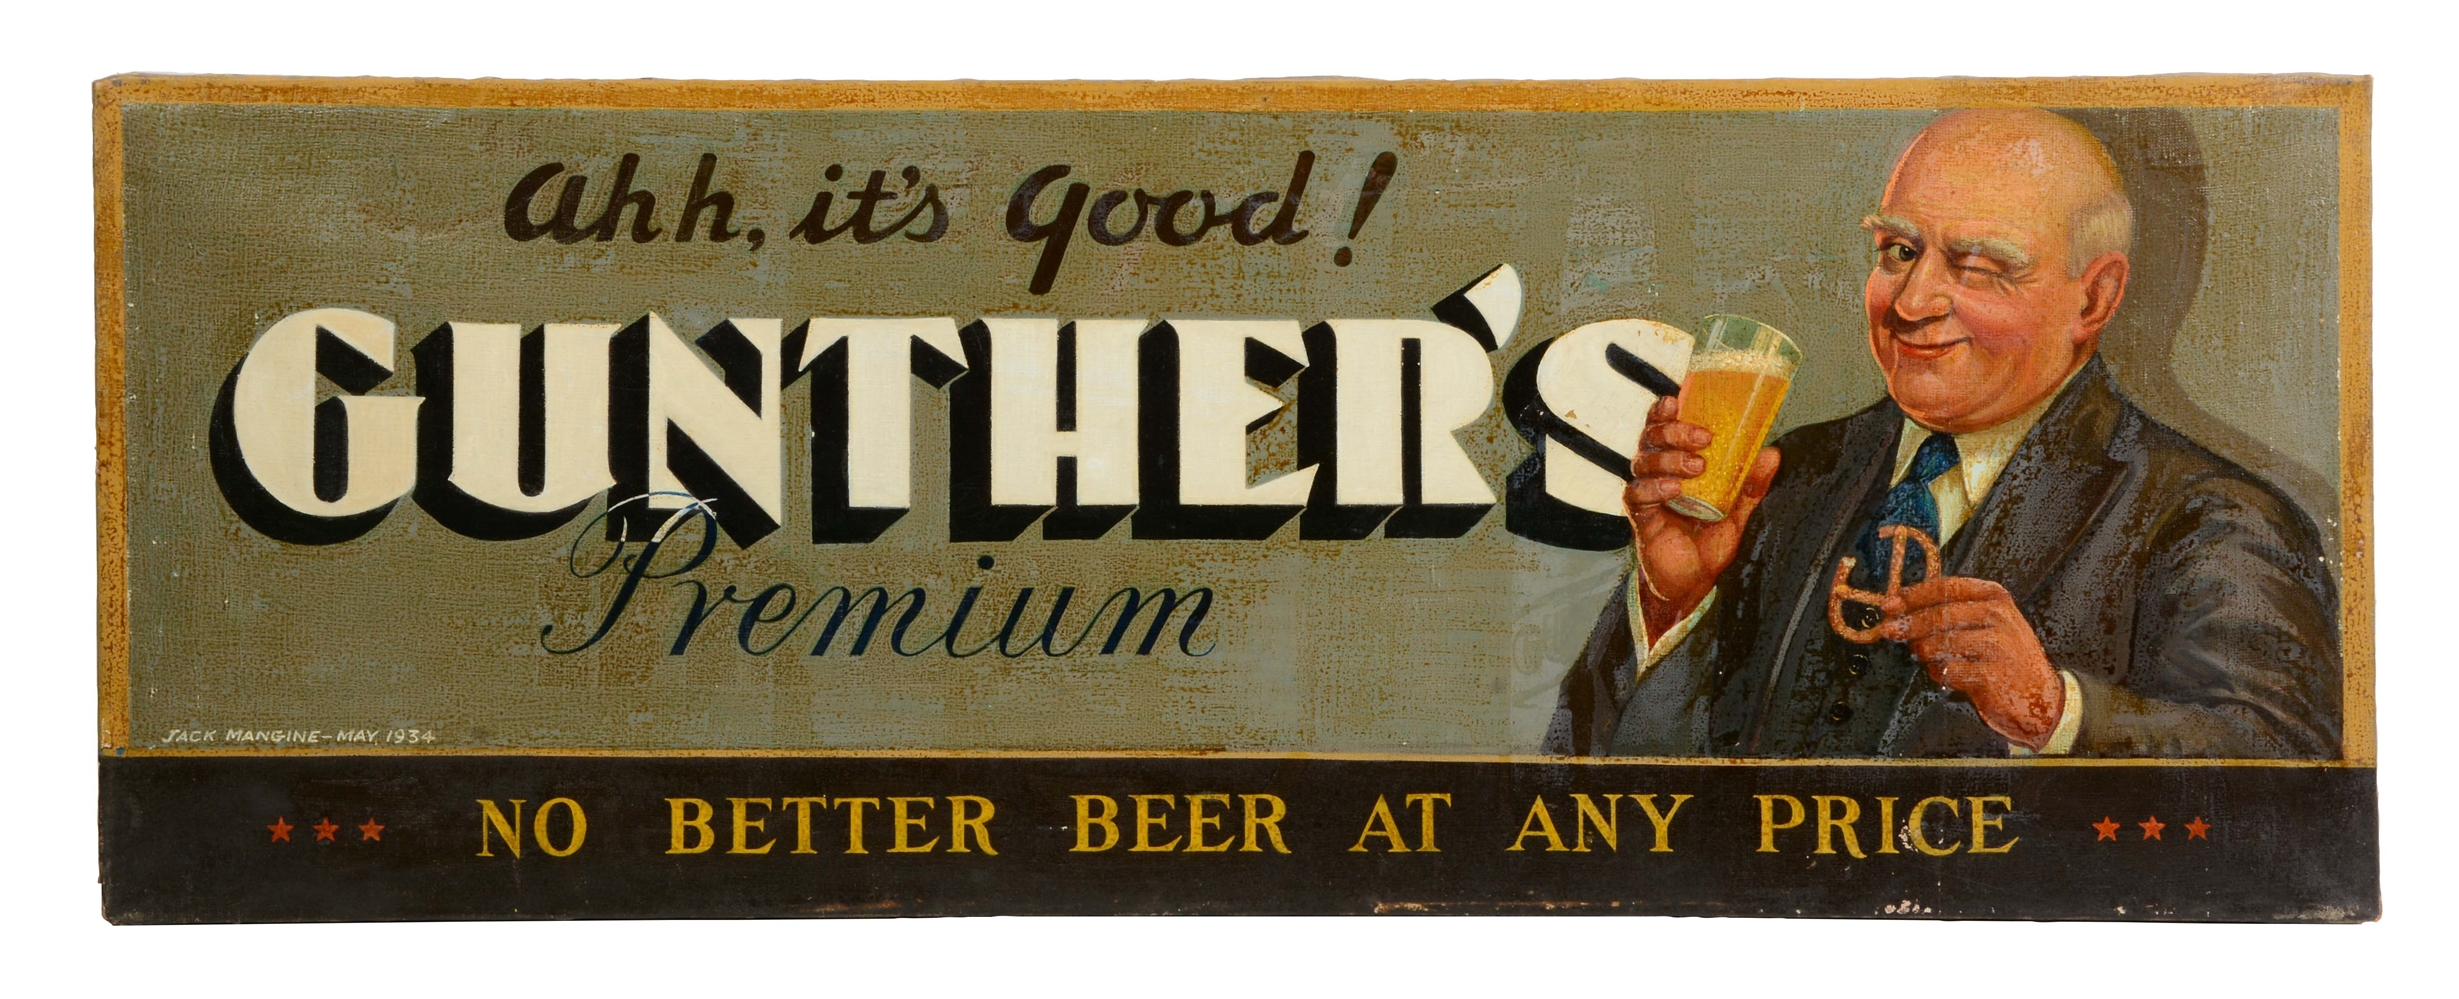 ORIGINAL ARTWORK OIL ON CANVAS FOR GUNTHERS BEER.